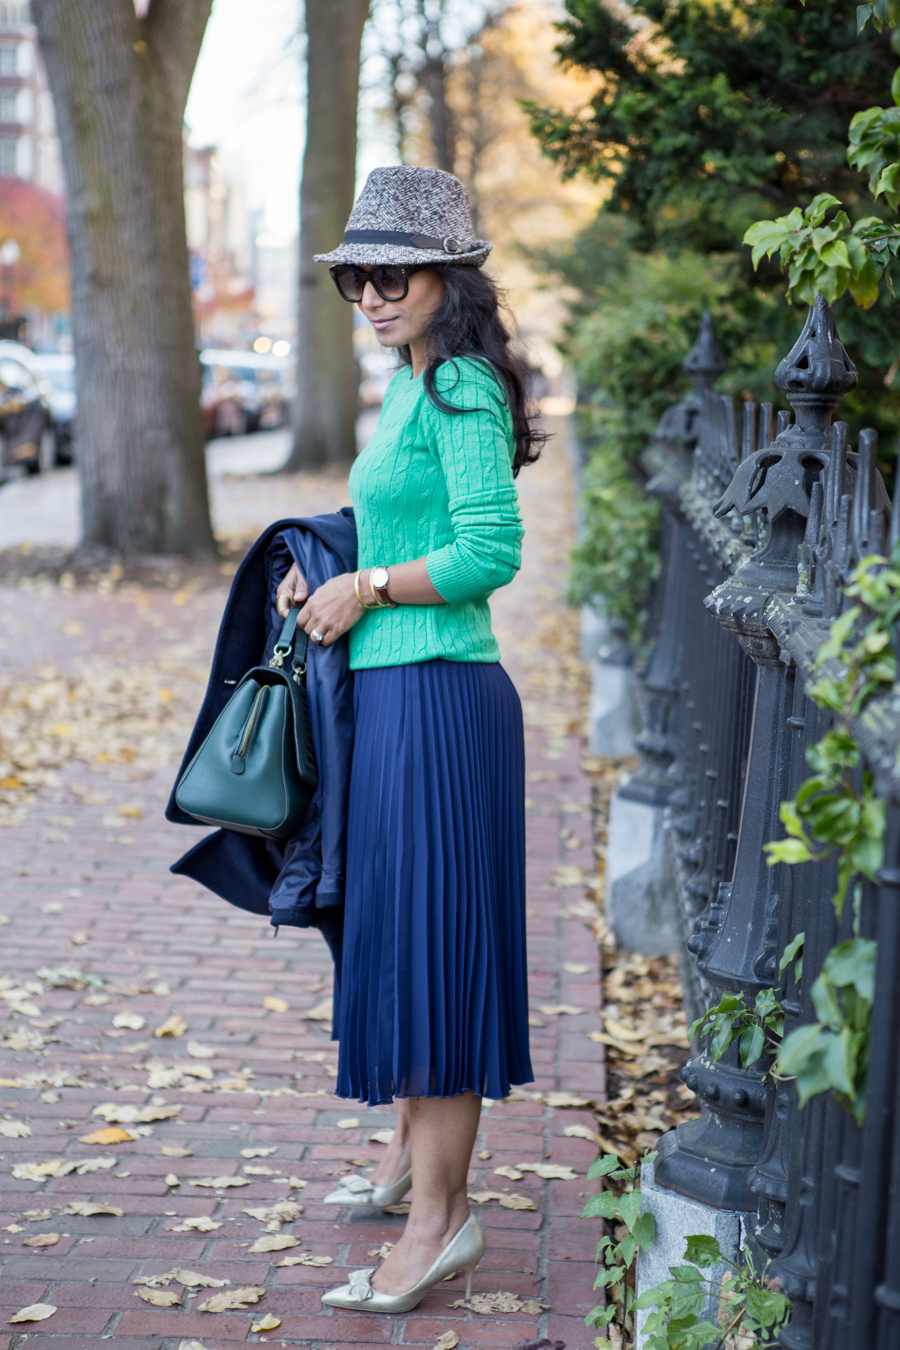 fall fashion, winter style, petite fashion, petite sweaters, jewel tones, colorful, feminine style, petite style, classic style, bows, vibrant colors, work style, long coat, navy coat, forever 21, zara, nordstrom, target style